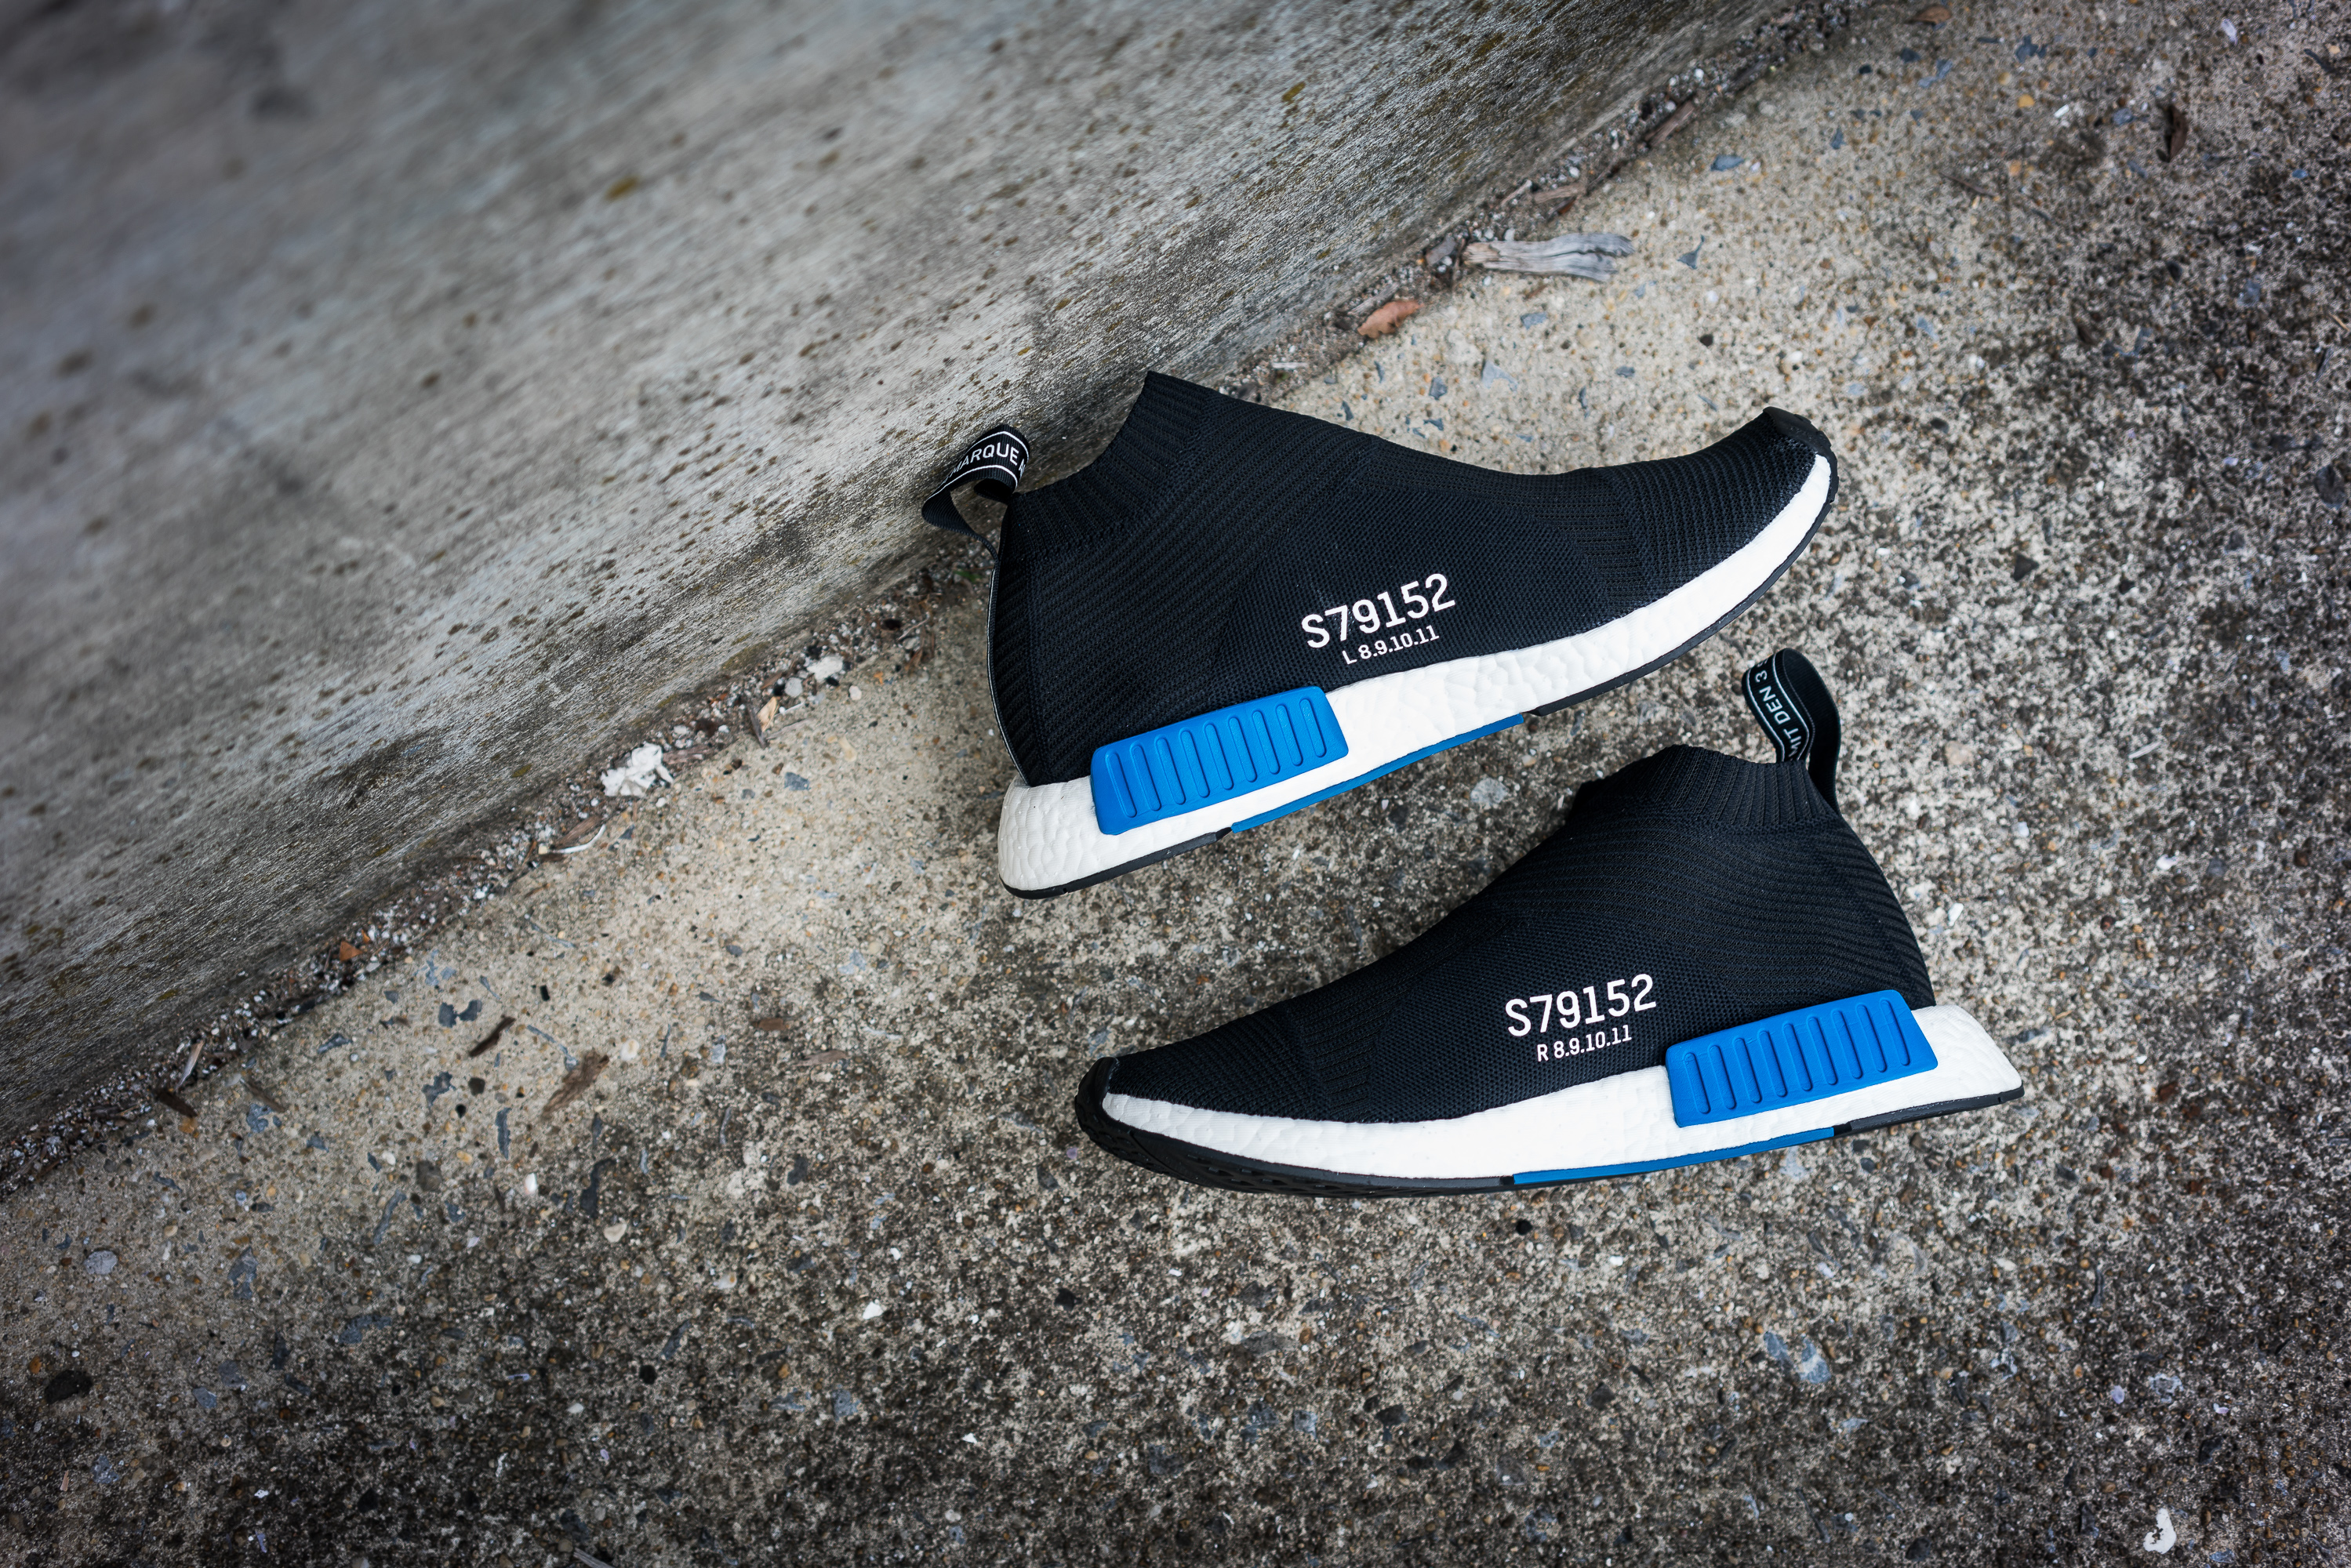 e6f7be465352f The adidas NMD City Sock Primeknit is Set to Release This Weekend-4 ...